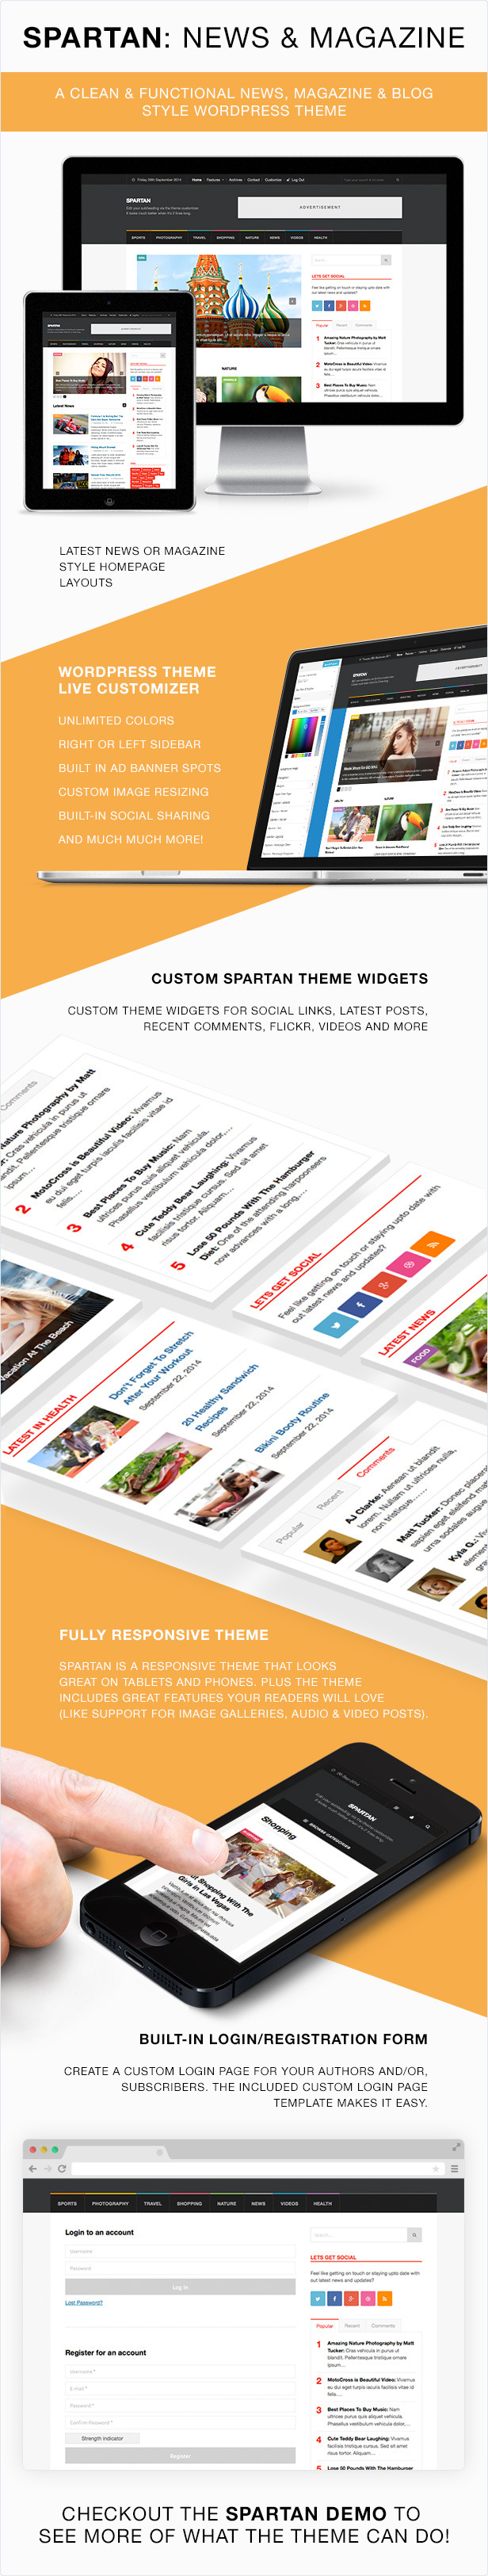 Spartan Magazine - News Blog WordPress Theme